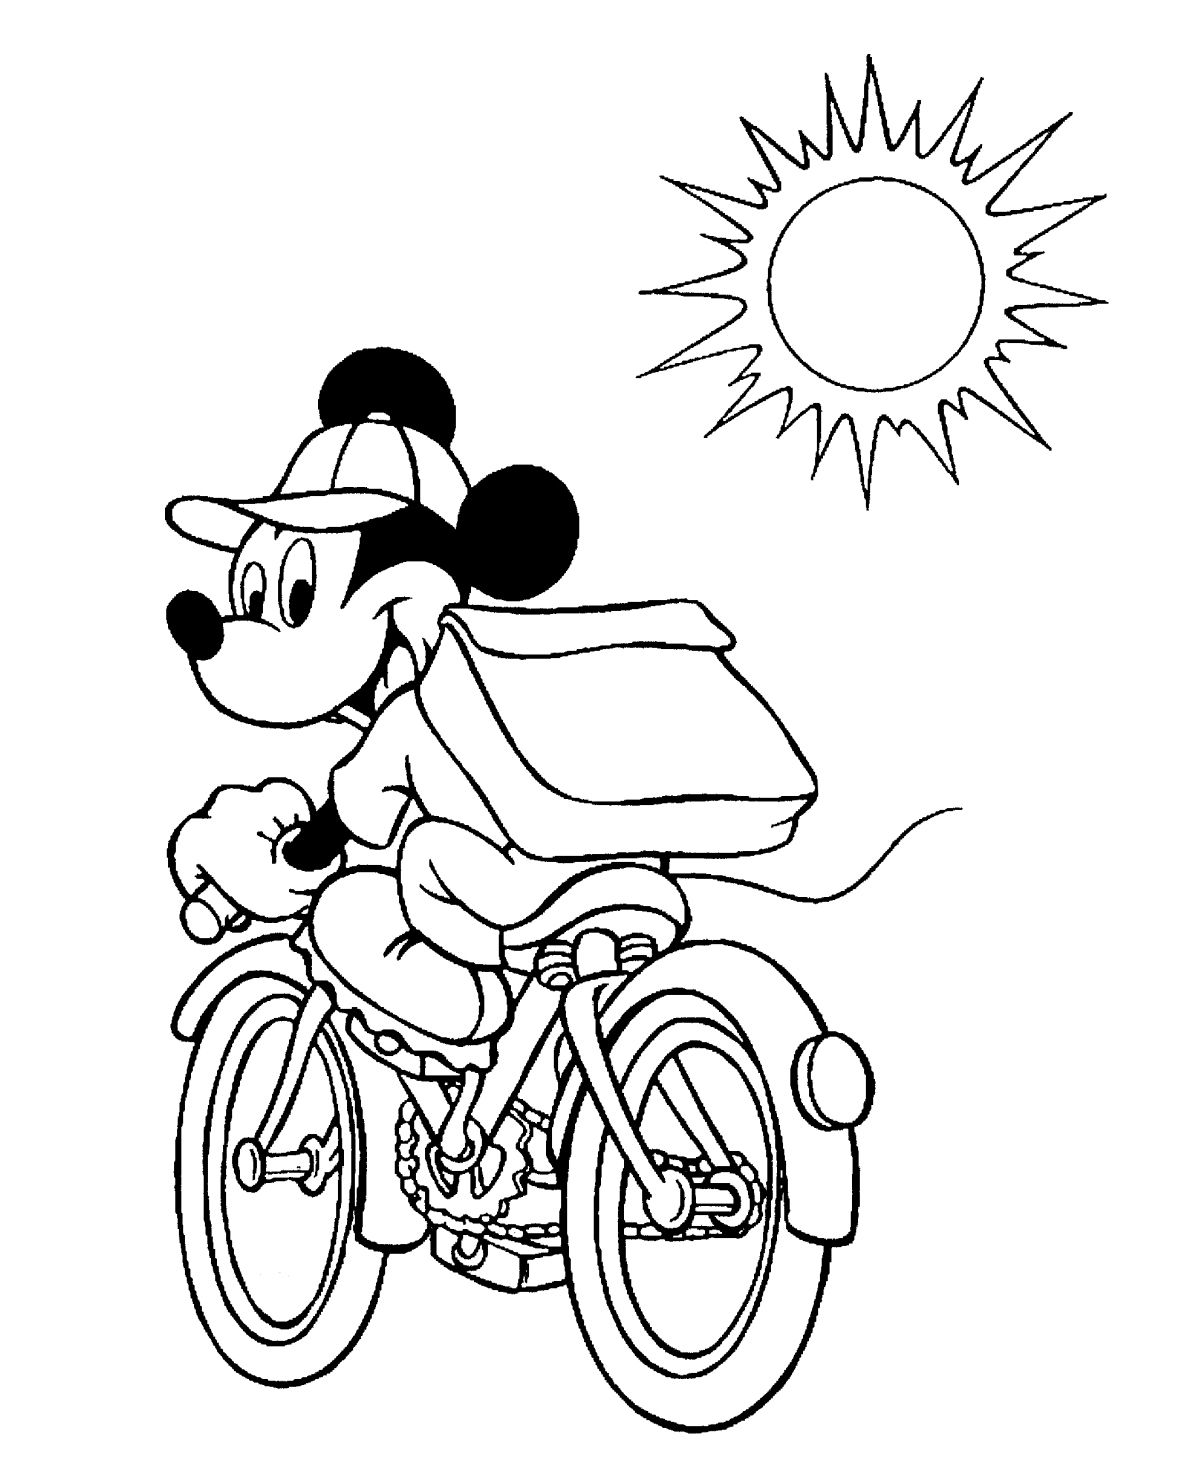 MickeyMousecoloring4 (406K) Mickey mouse coloring